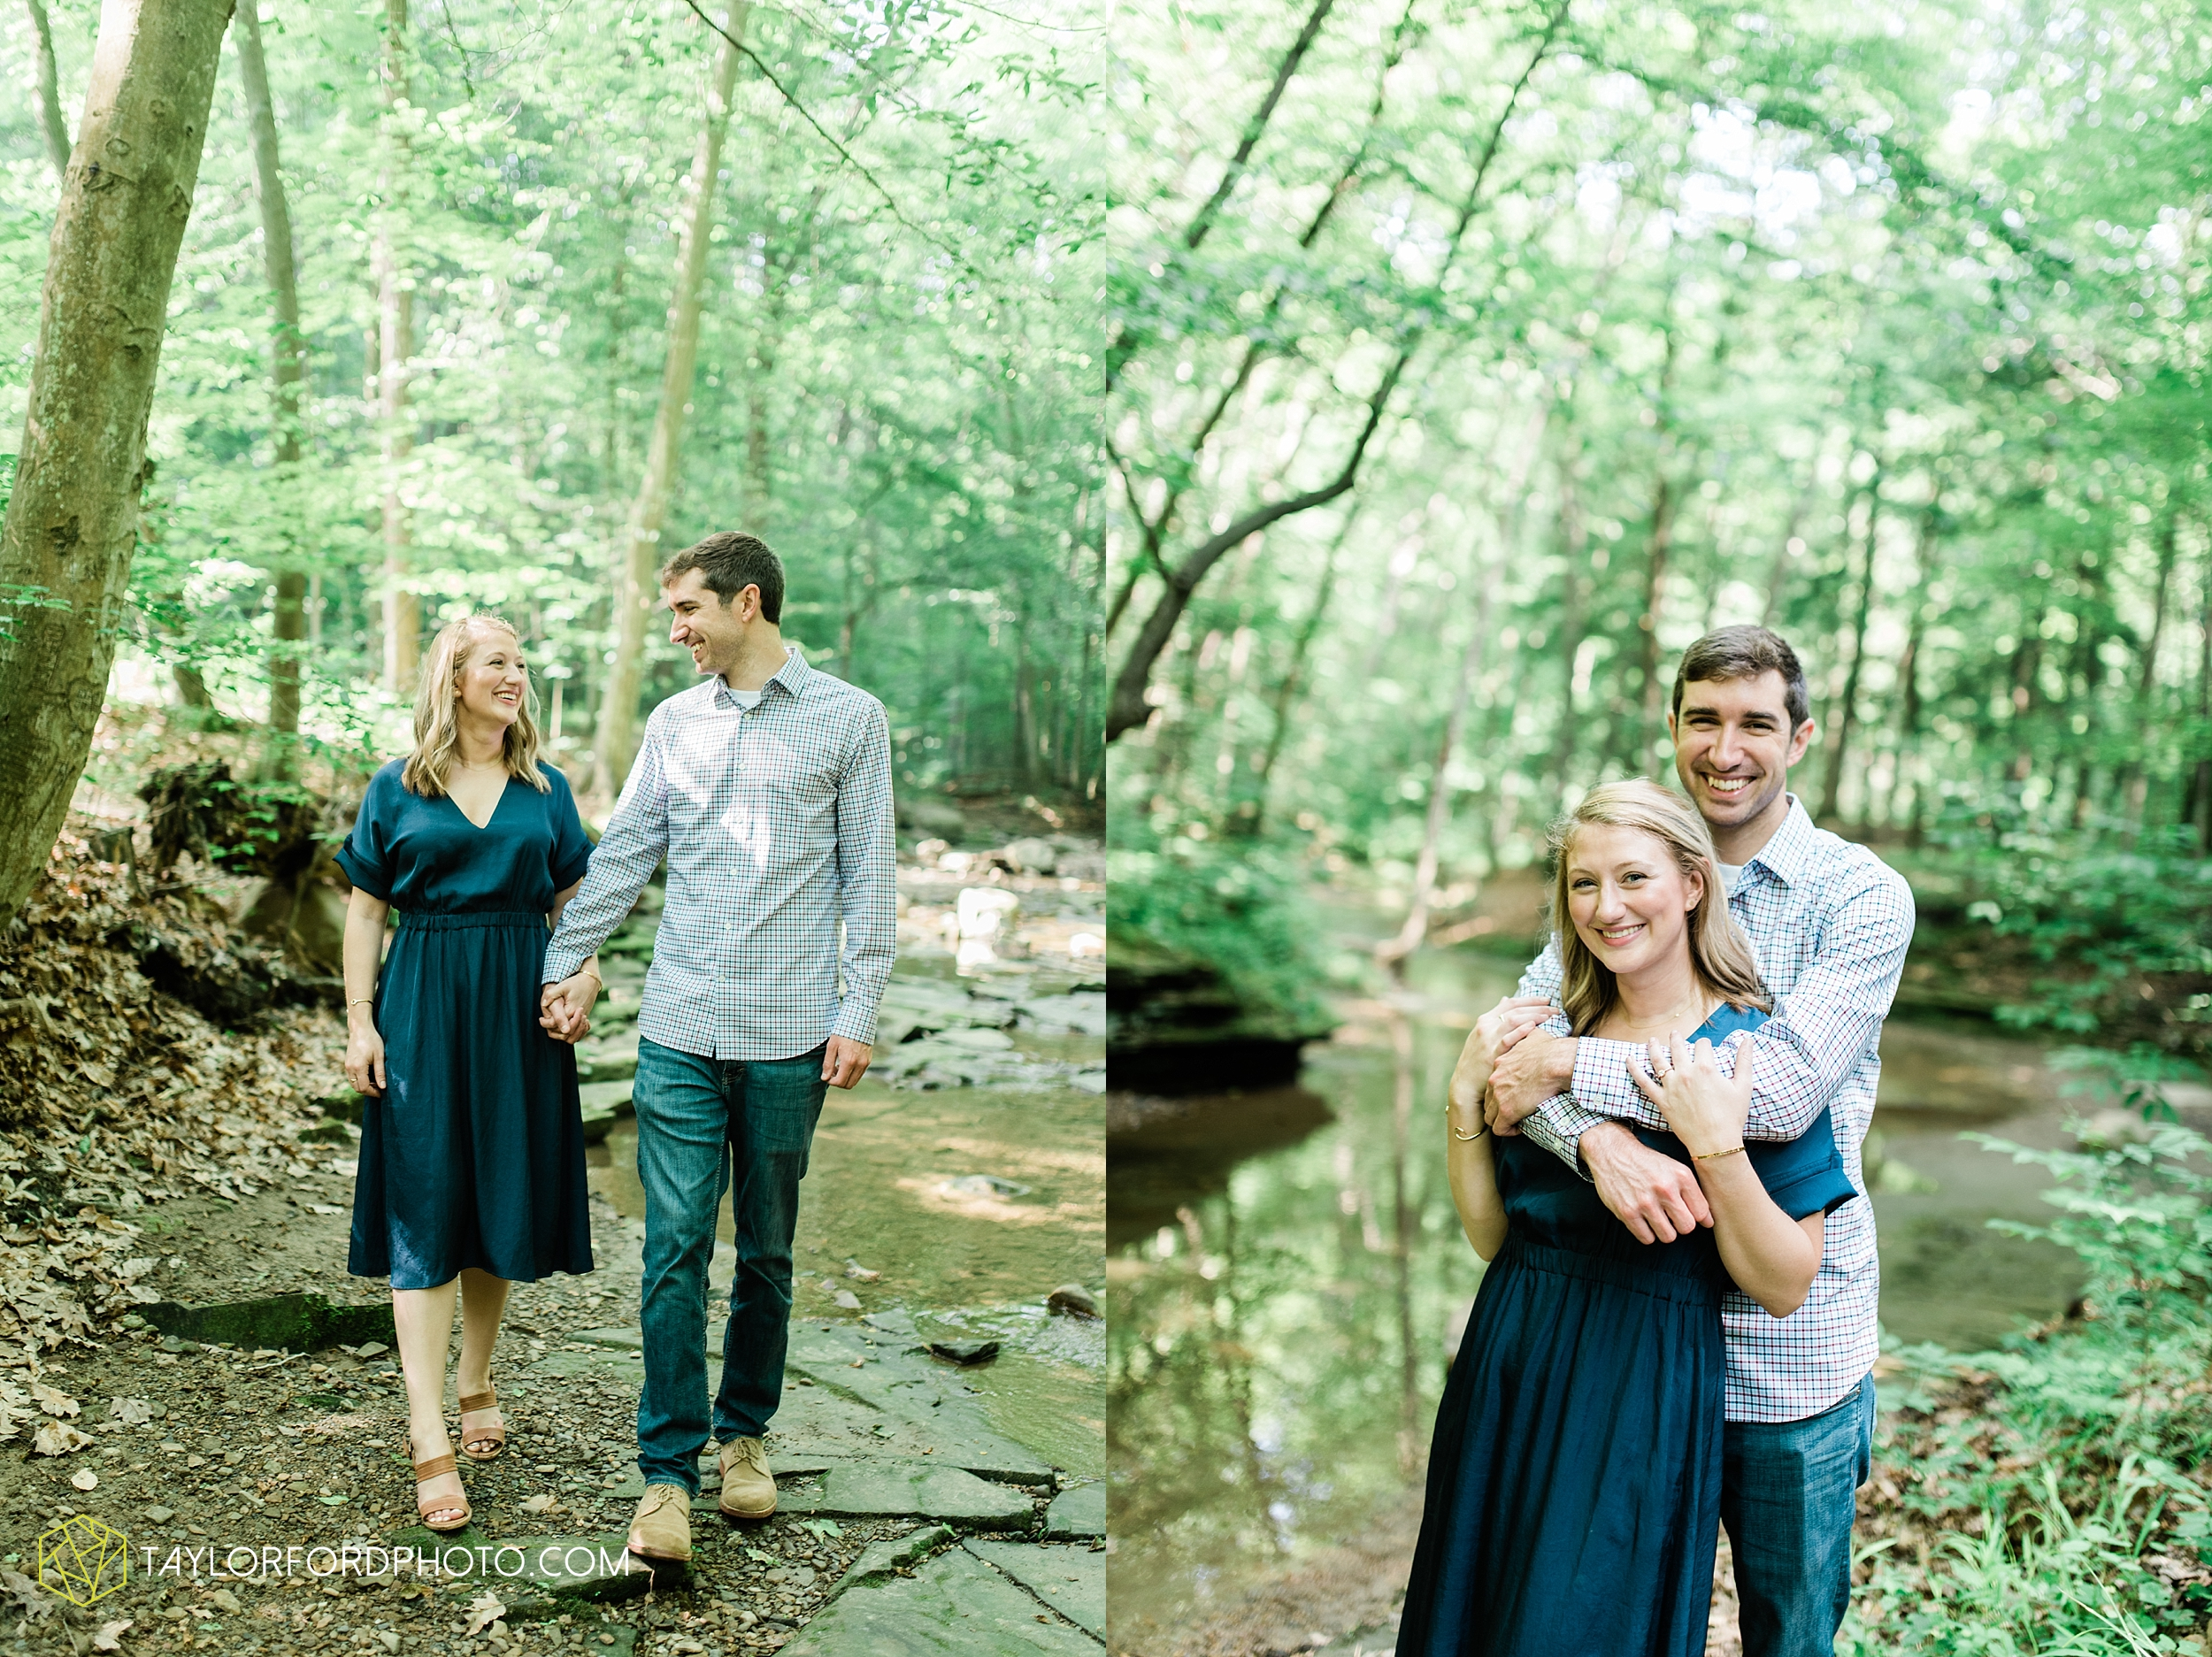 margo-evan-kohler-south-chagrin-reservation-chagrin-falls-cleveland-ohio-engagement-wedding-photographer-Taylor-Ford-Photography_8167.jpg